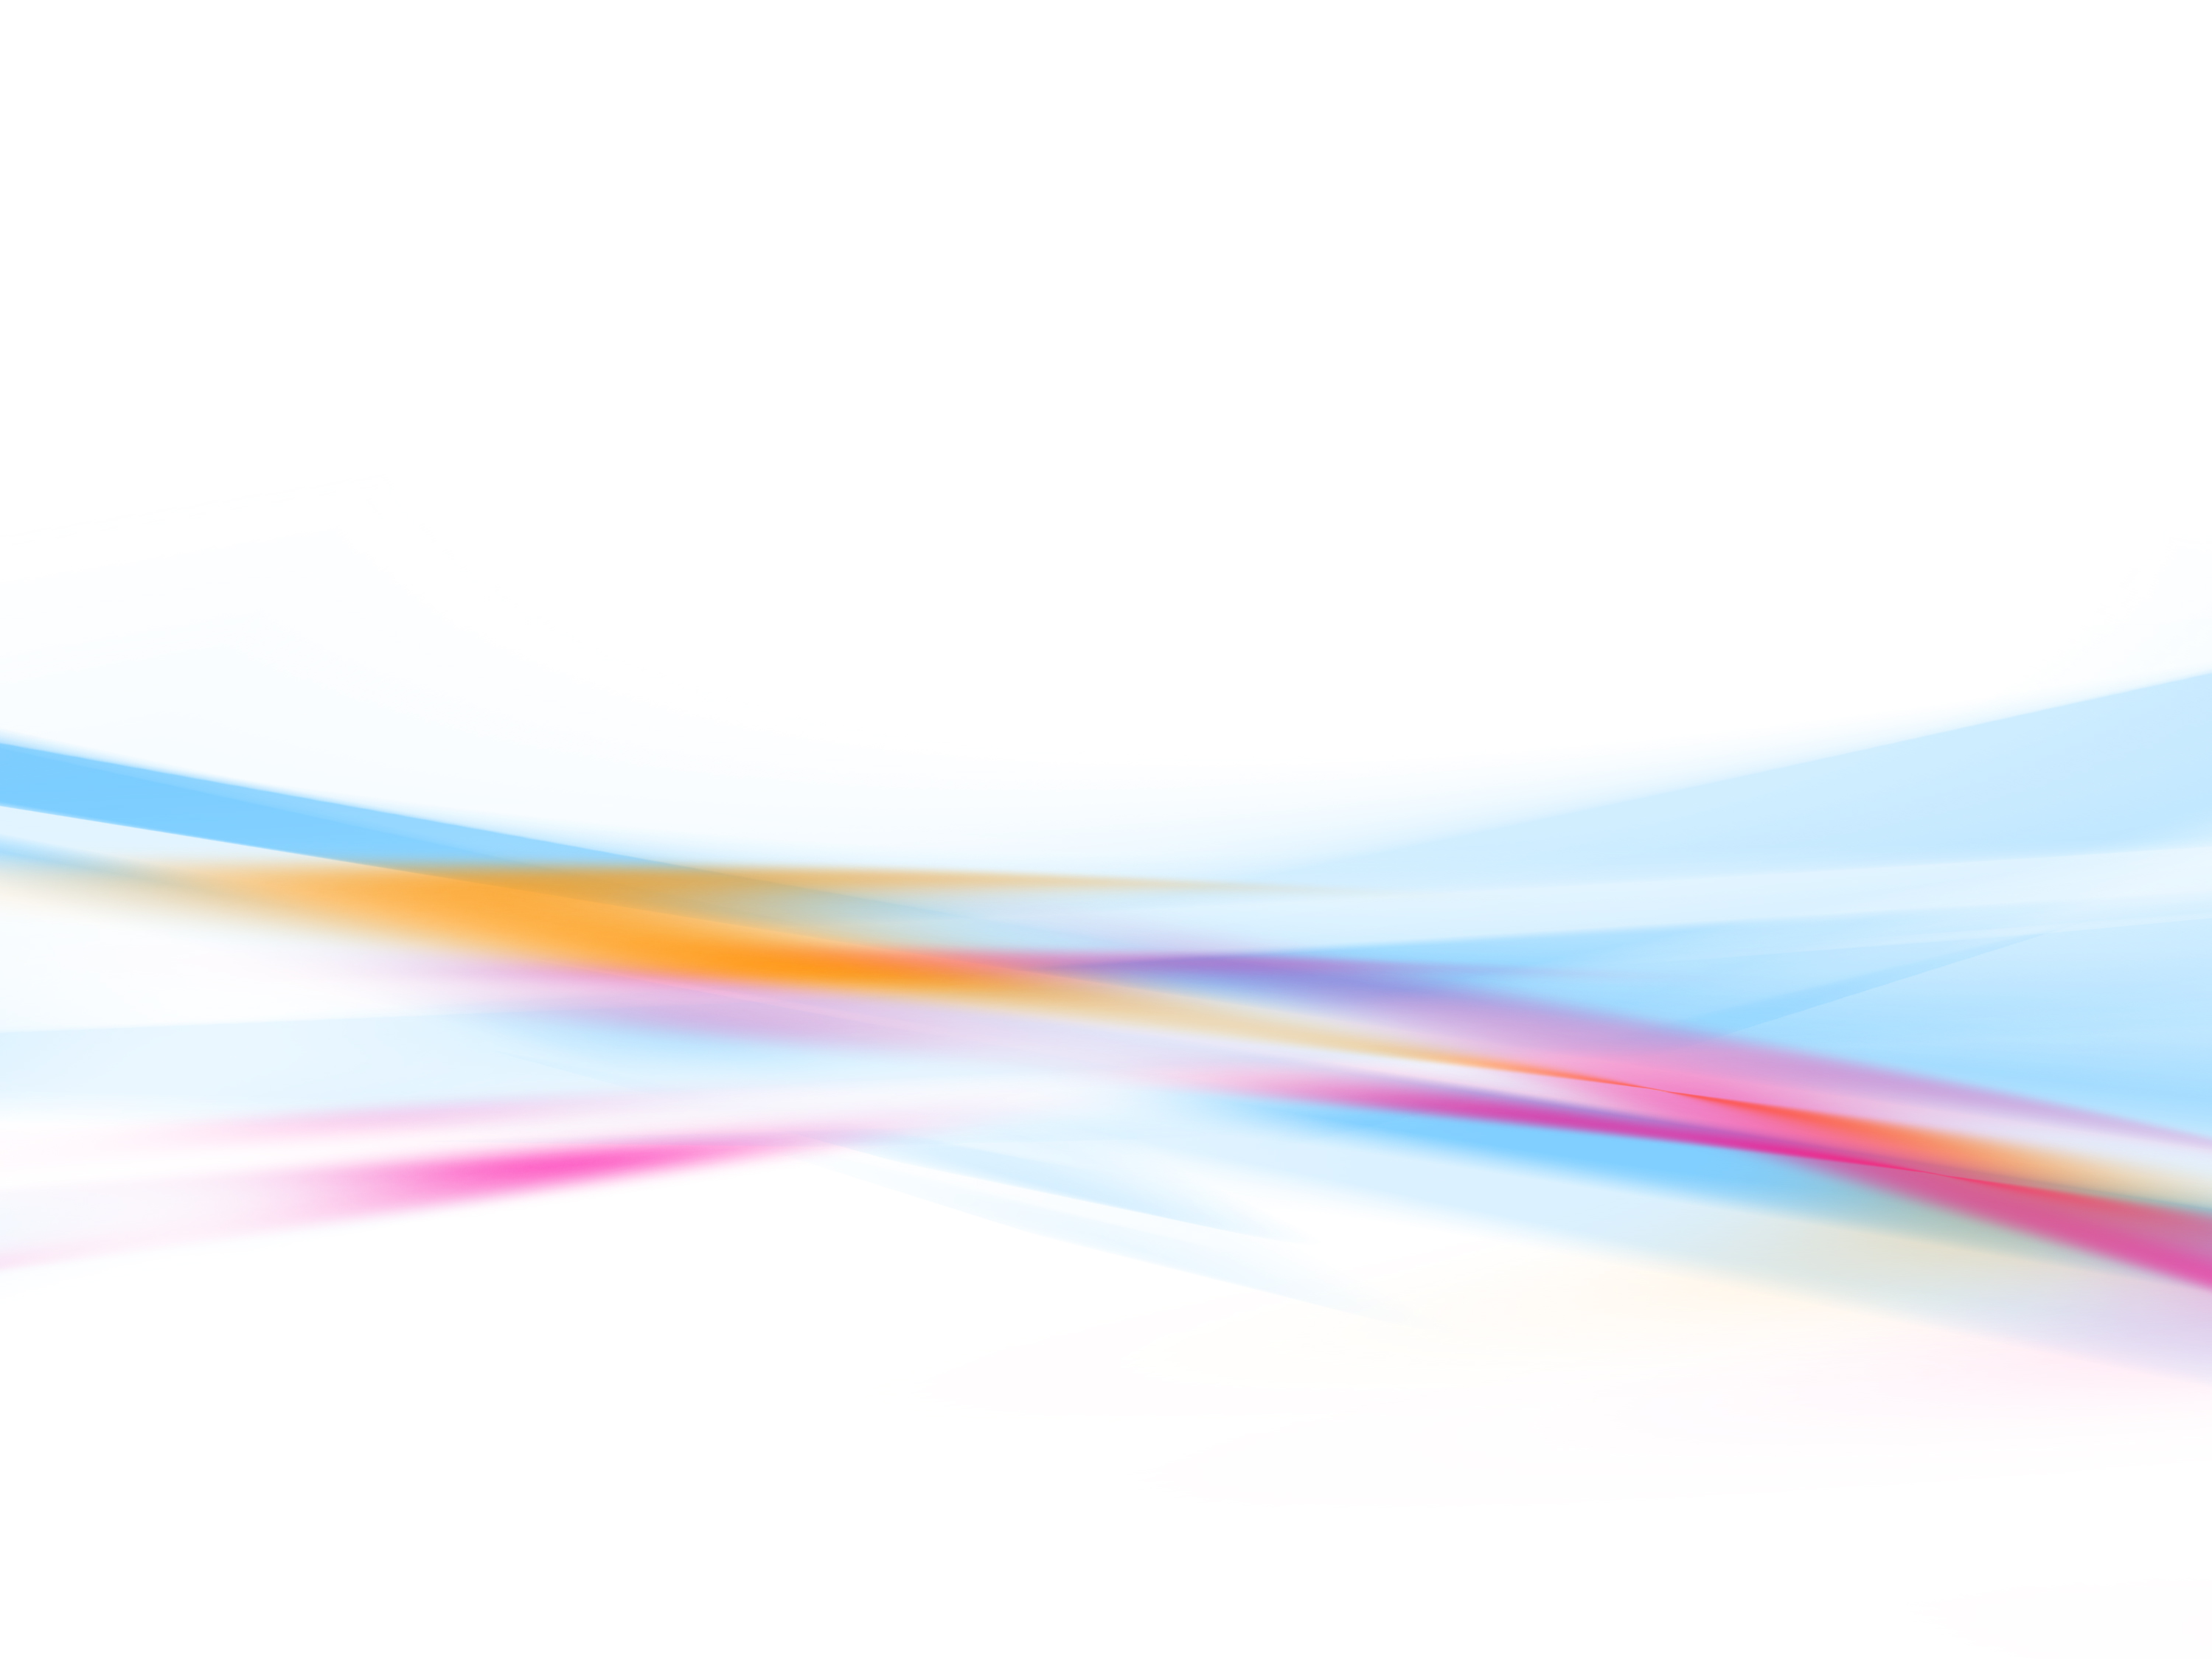 Free Abstract Backgrounds - WallpaperSafari